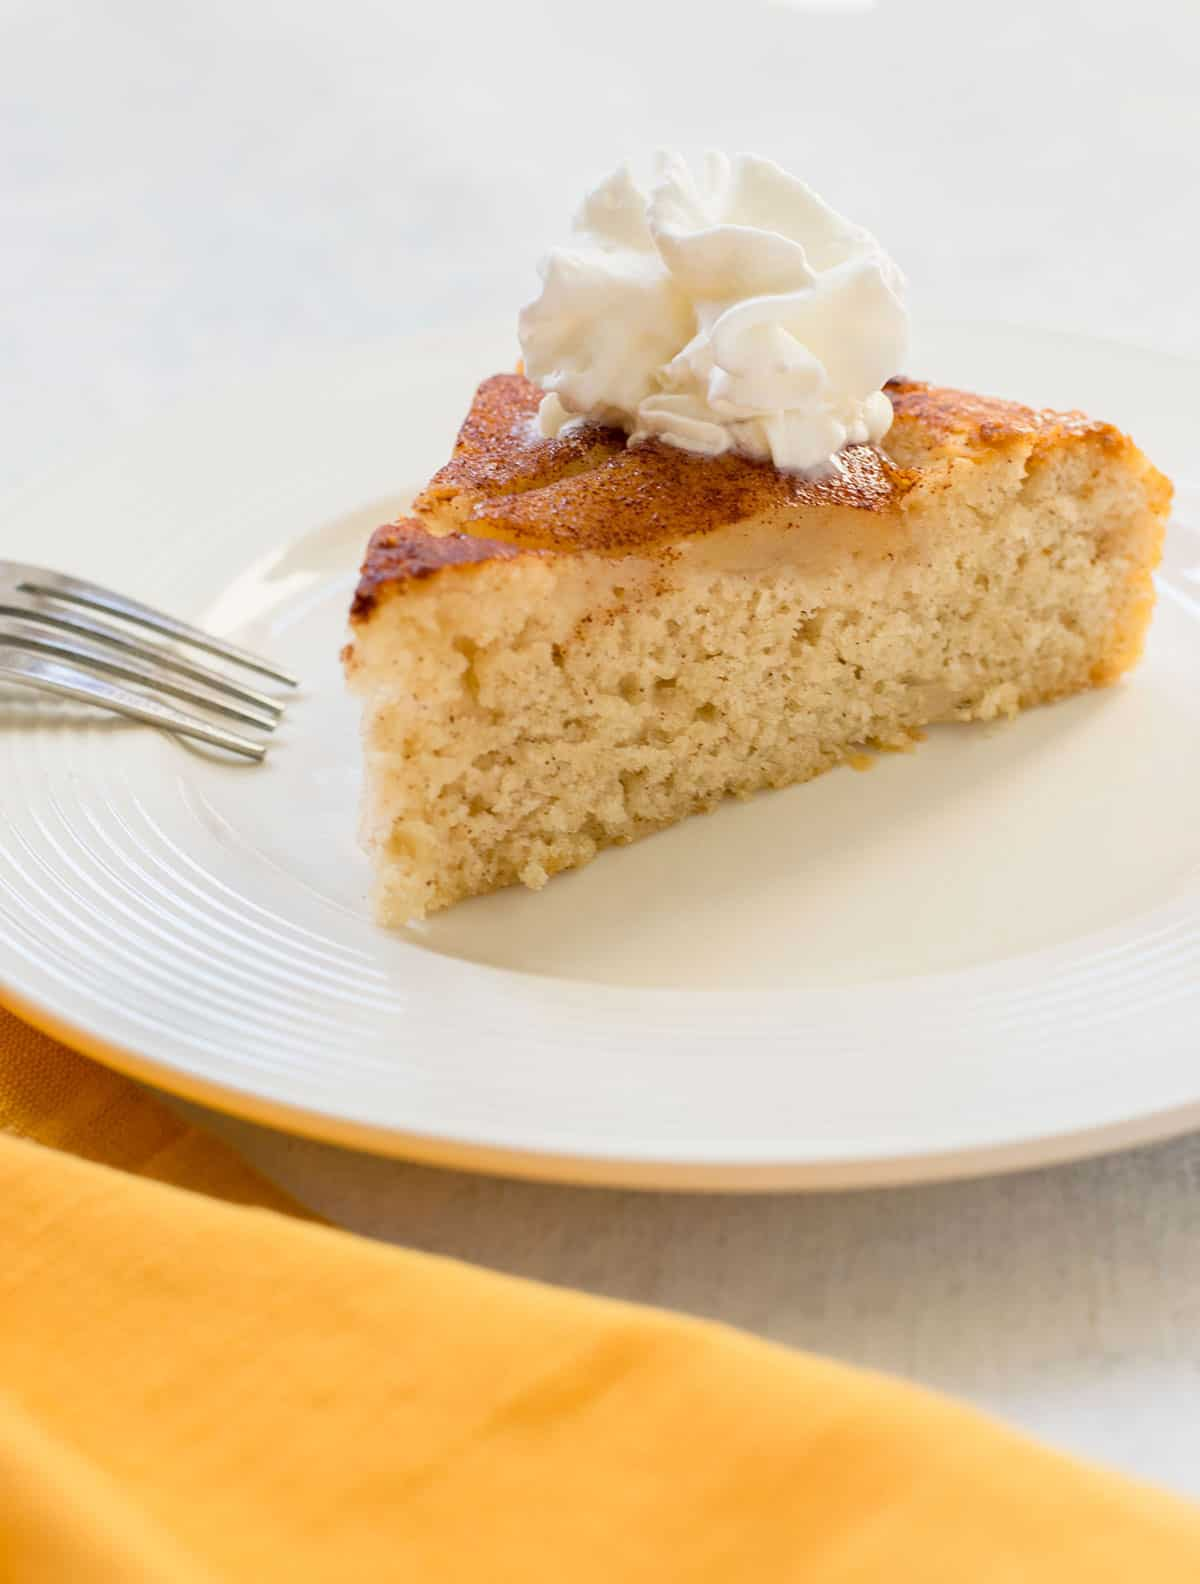 slice of pear cake with cinnamon and whipped cream on white plate with fork